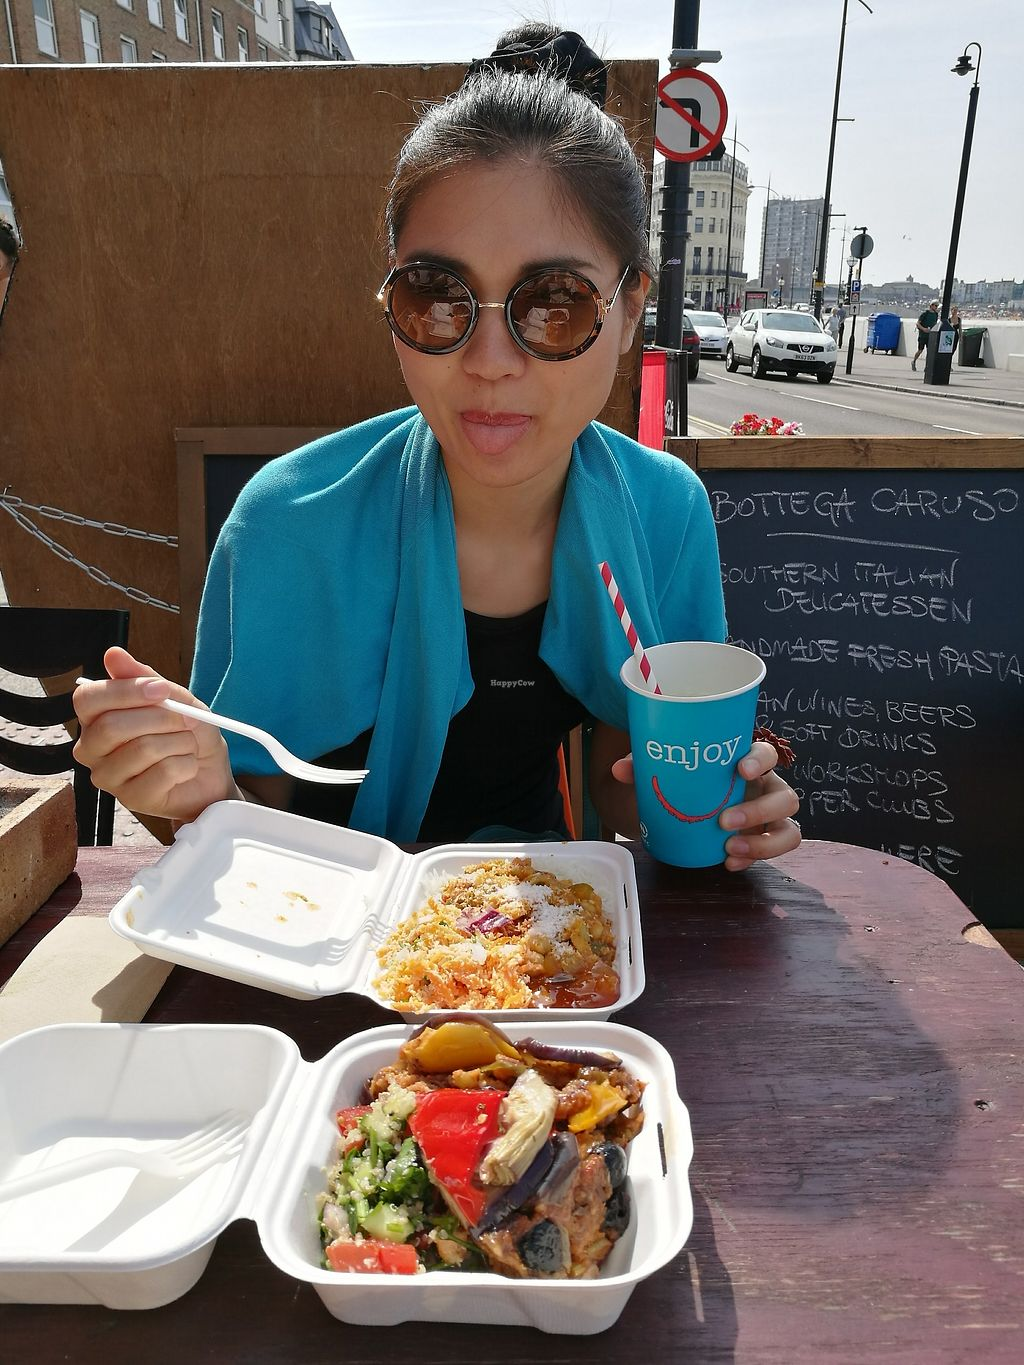 """Photo of Master Foody Moody's  by <a href=""""/members/profile/p4V_"""">p4V_</a> <br/>lunch and lemonade! <br/> October 31, 2017  - <a href='/contact/abuse/image/102735/320533'>Report</a>"""